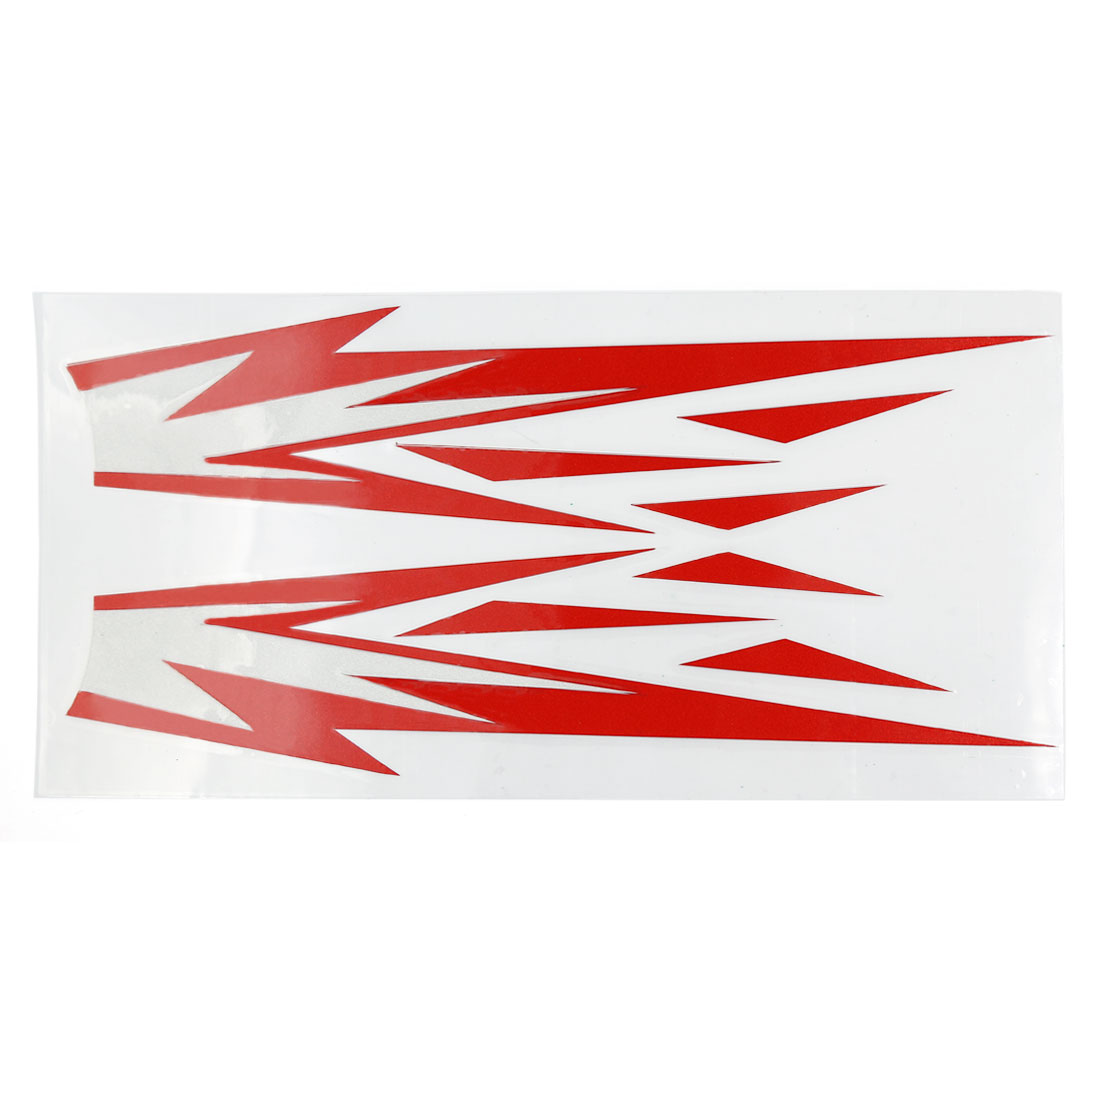 Car Exterior Decor Fire Flame Pattern Reflective Sticker Vinyl Decal Red White